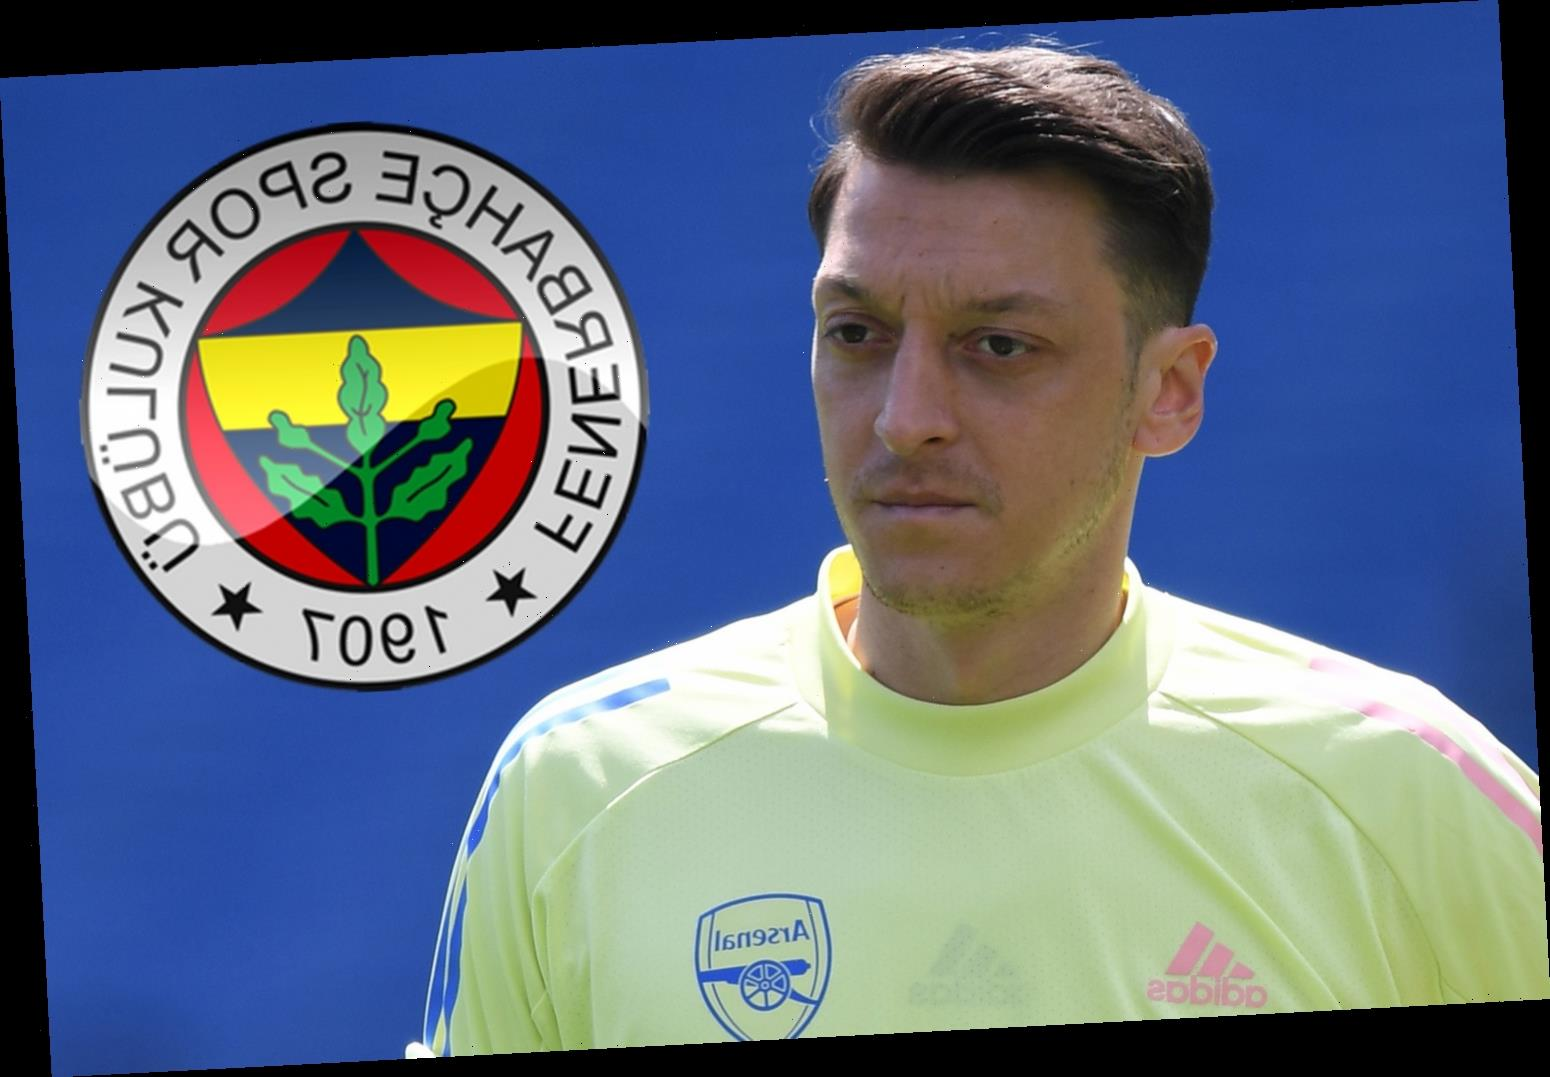 Mesut Ozil's Arsenal future to be decided in matter of days says Arteta with outcast 'to wear No67 shirt at Fenerbahce'